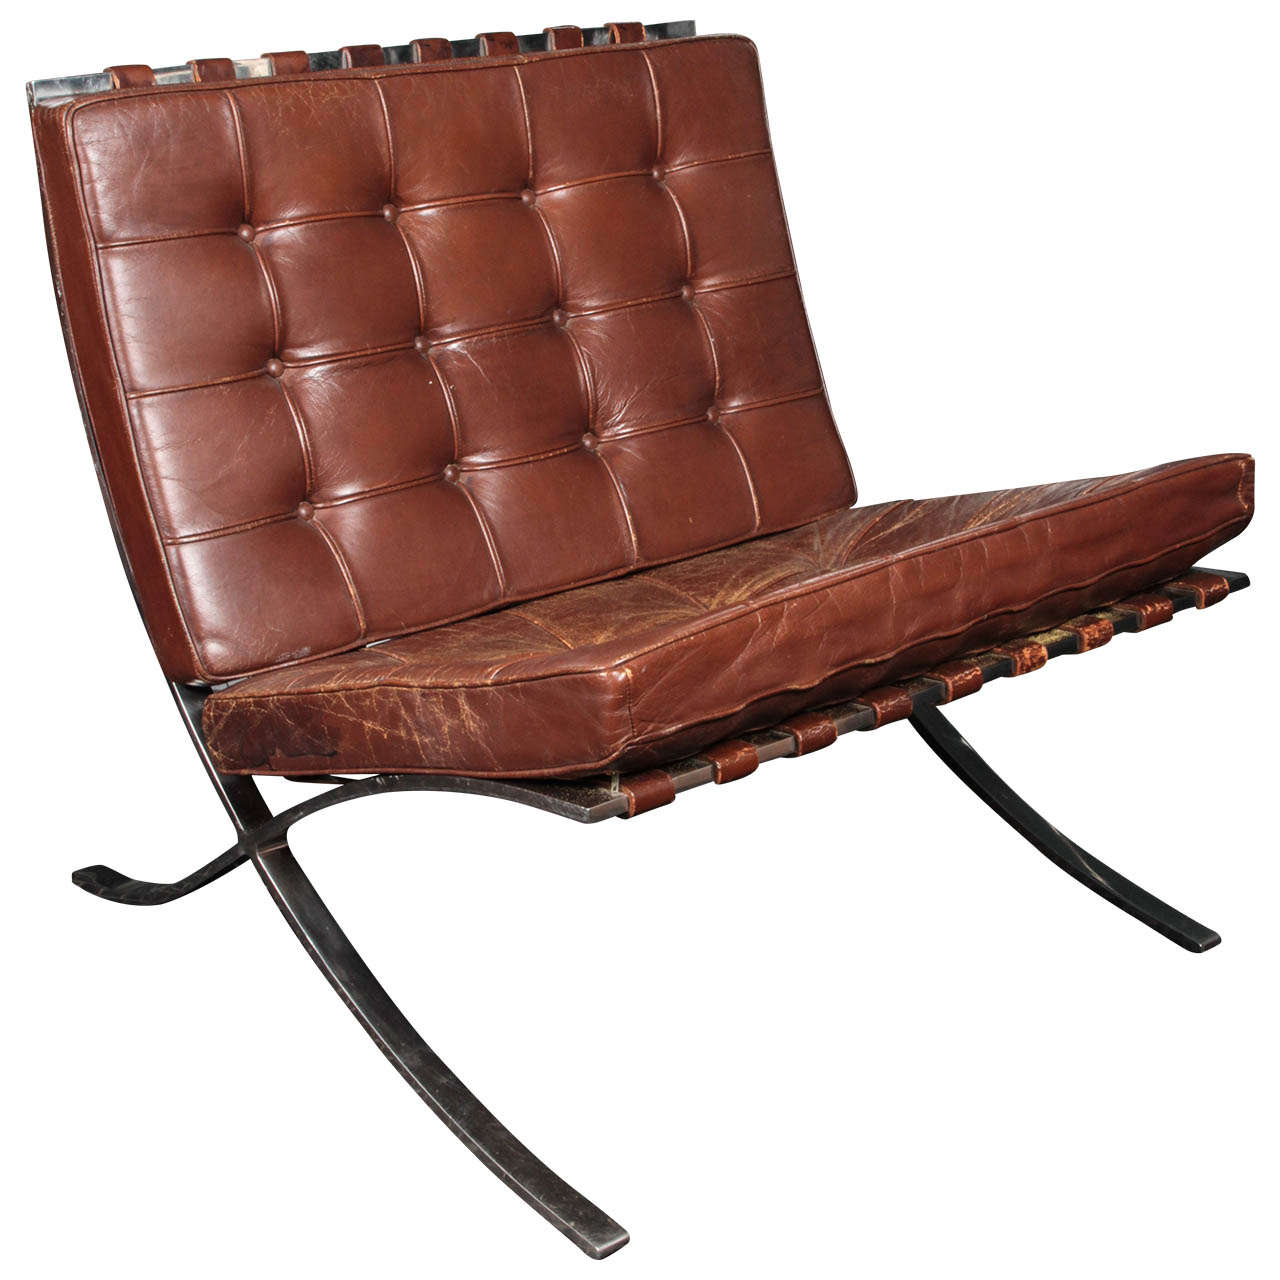 barcelona chair leather about a aac22 brown by ludwig mies van der rohe